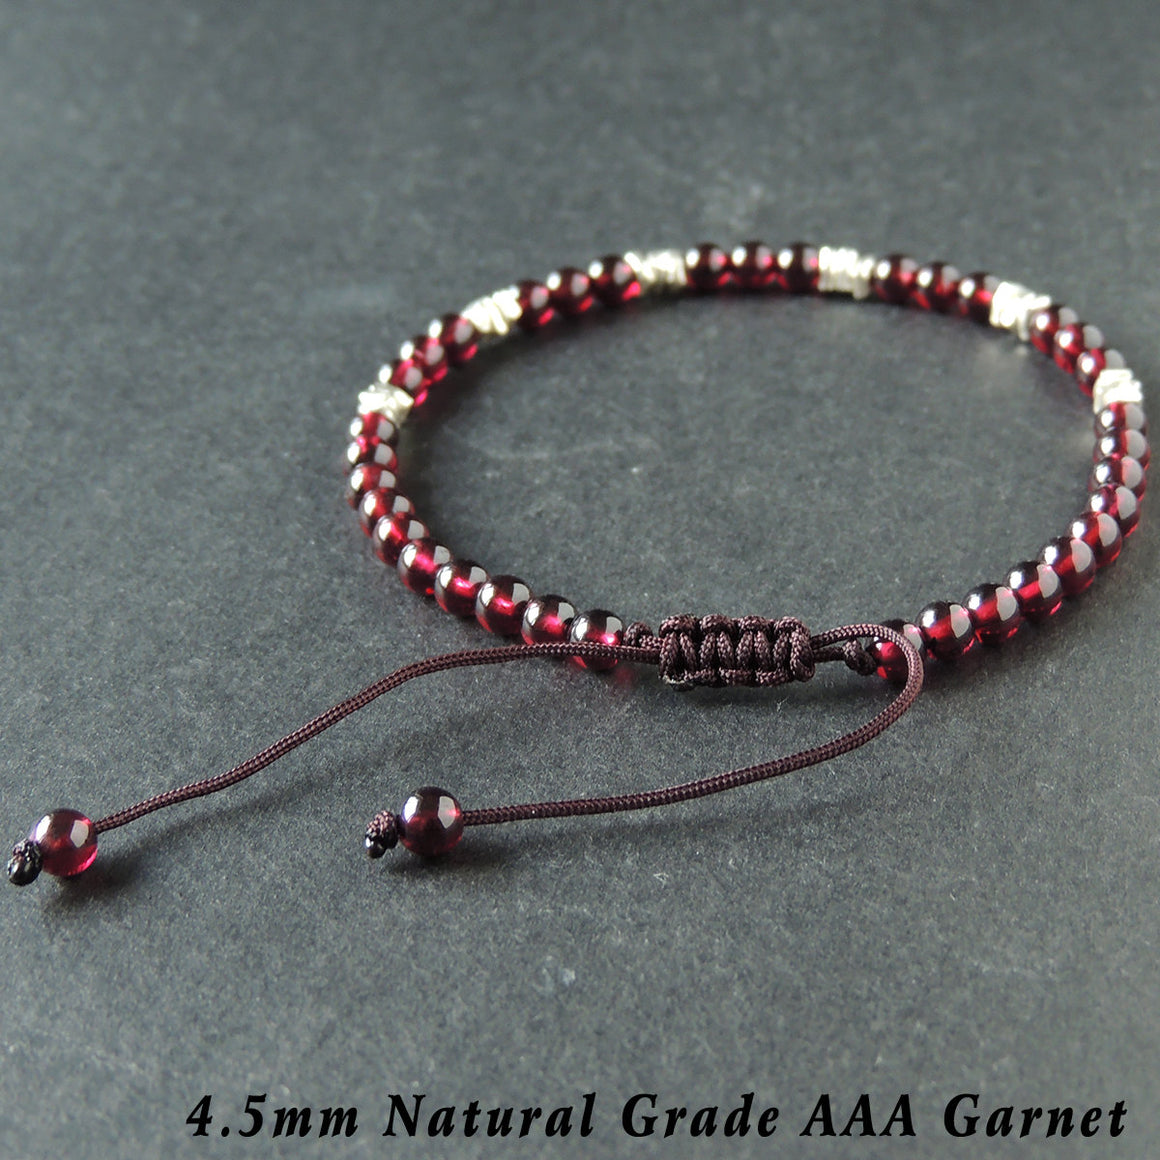 4.5mm Natural Grade AAA Garnet Adjustable Braided Gemstone Bracelet with S925 Sterling Silver Nugget Beads - Handmade by Gem & Silver BR958